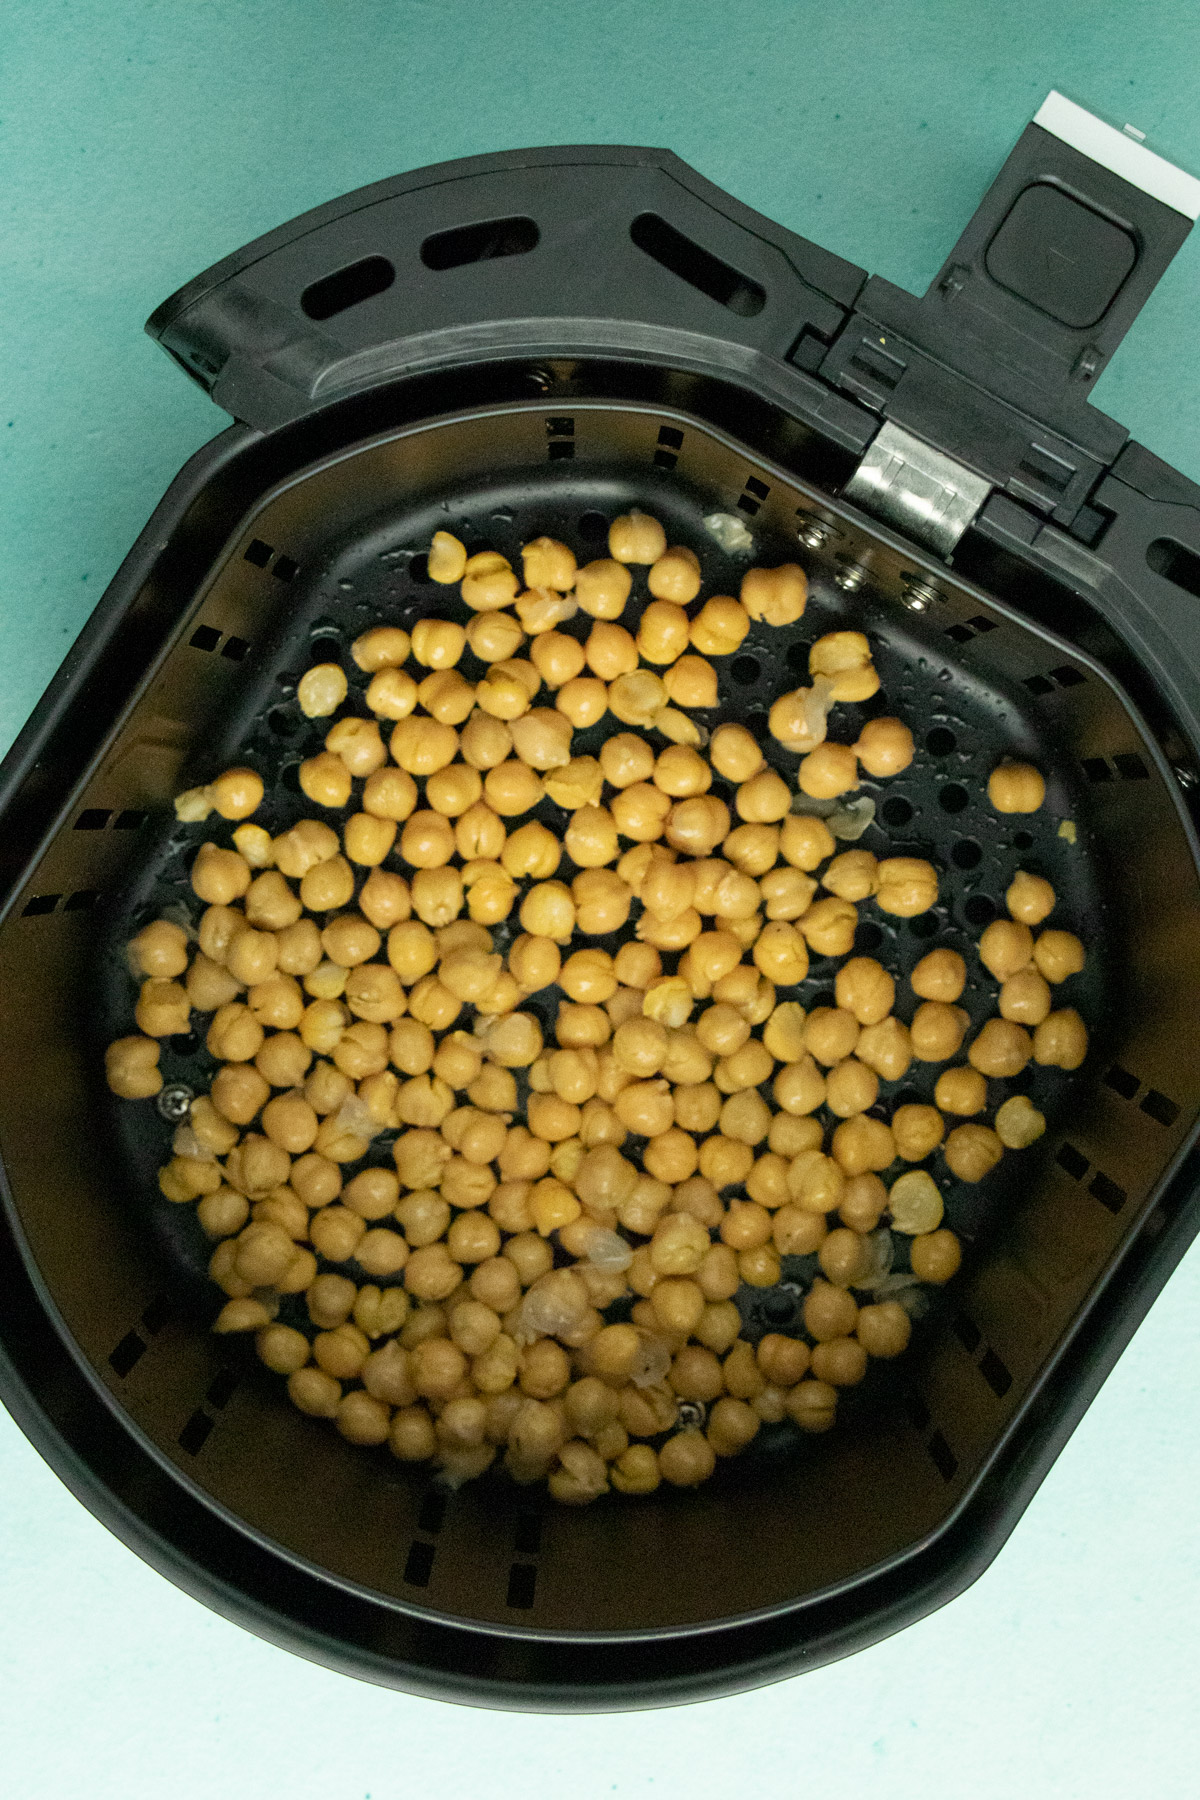 uncooked chickpeas in the air fryer basket